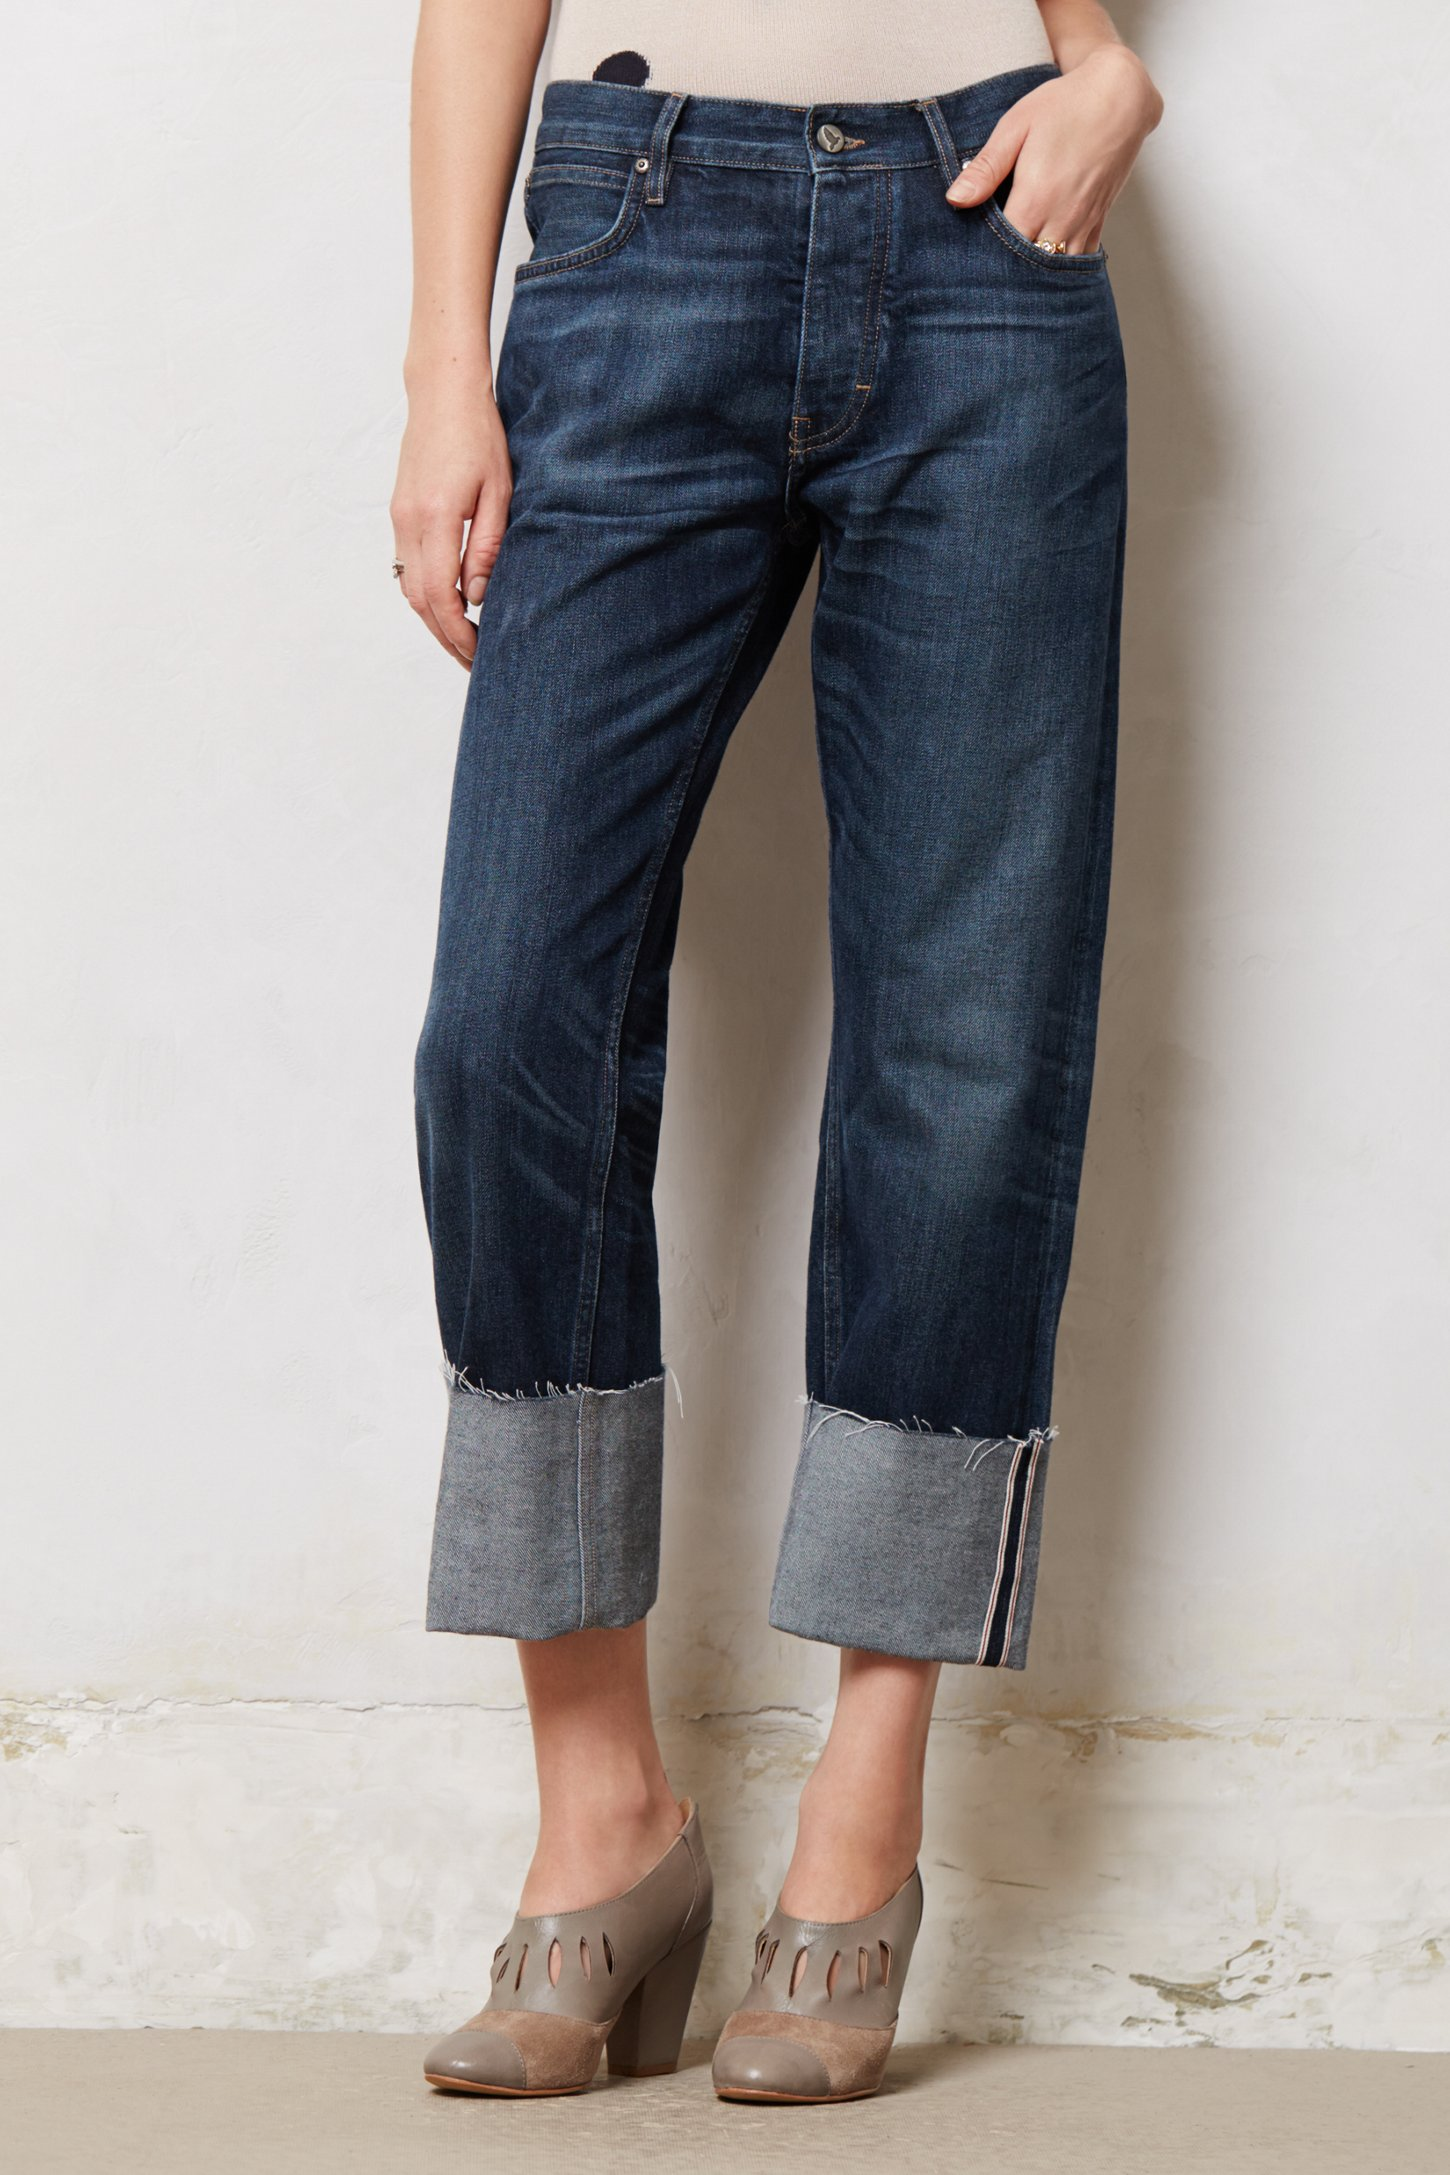 Teen tits petite slouch jeans river mail order